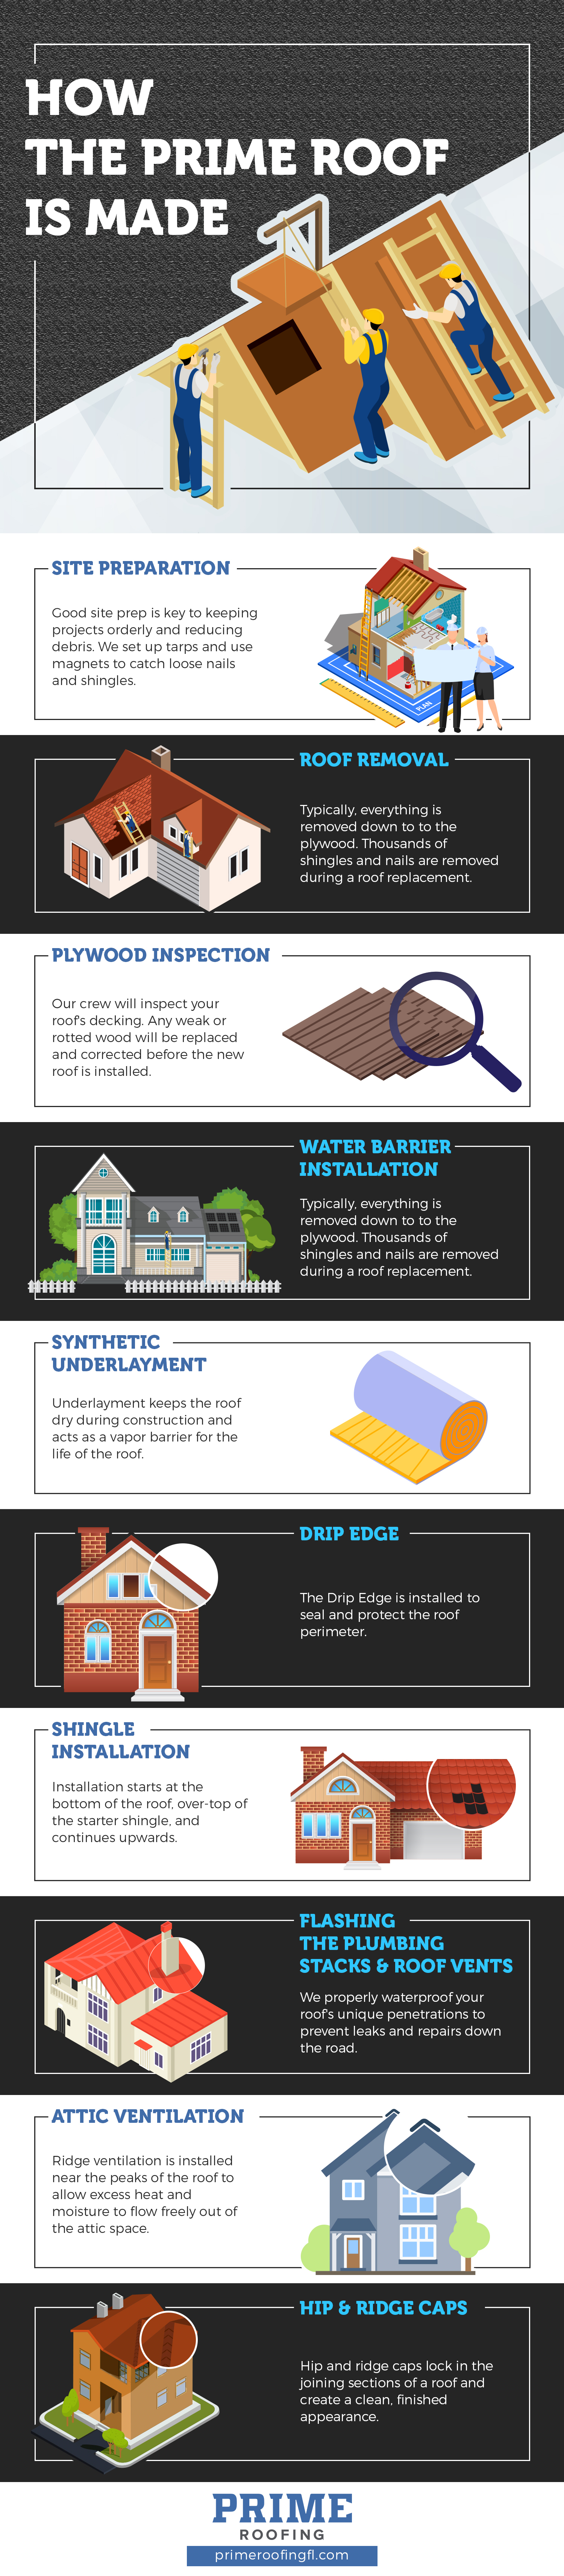 prime roofing process infographic